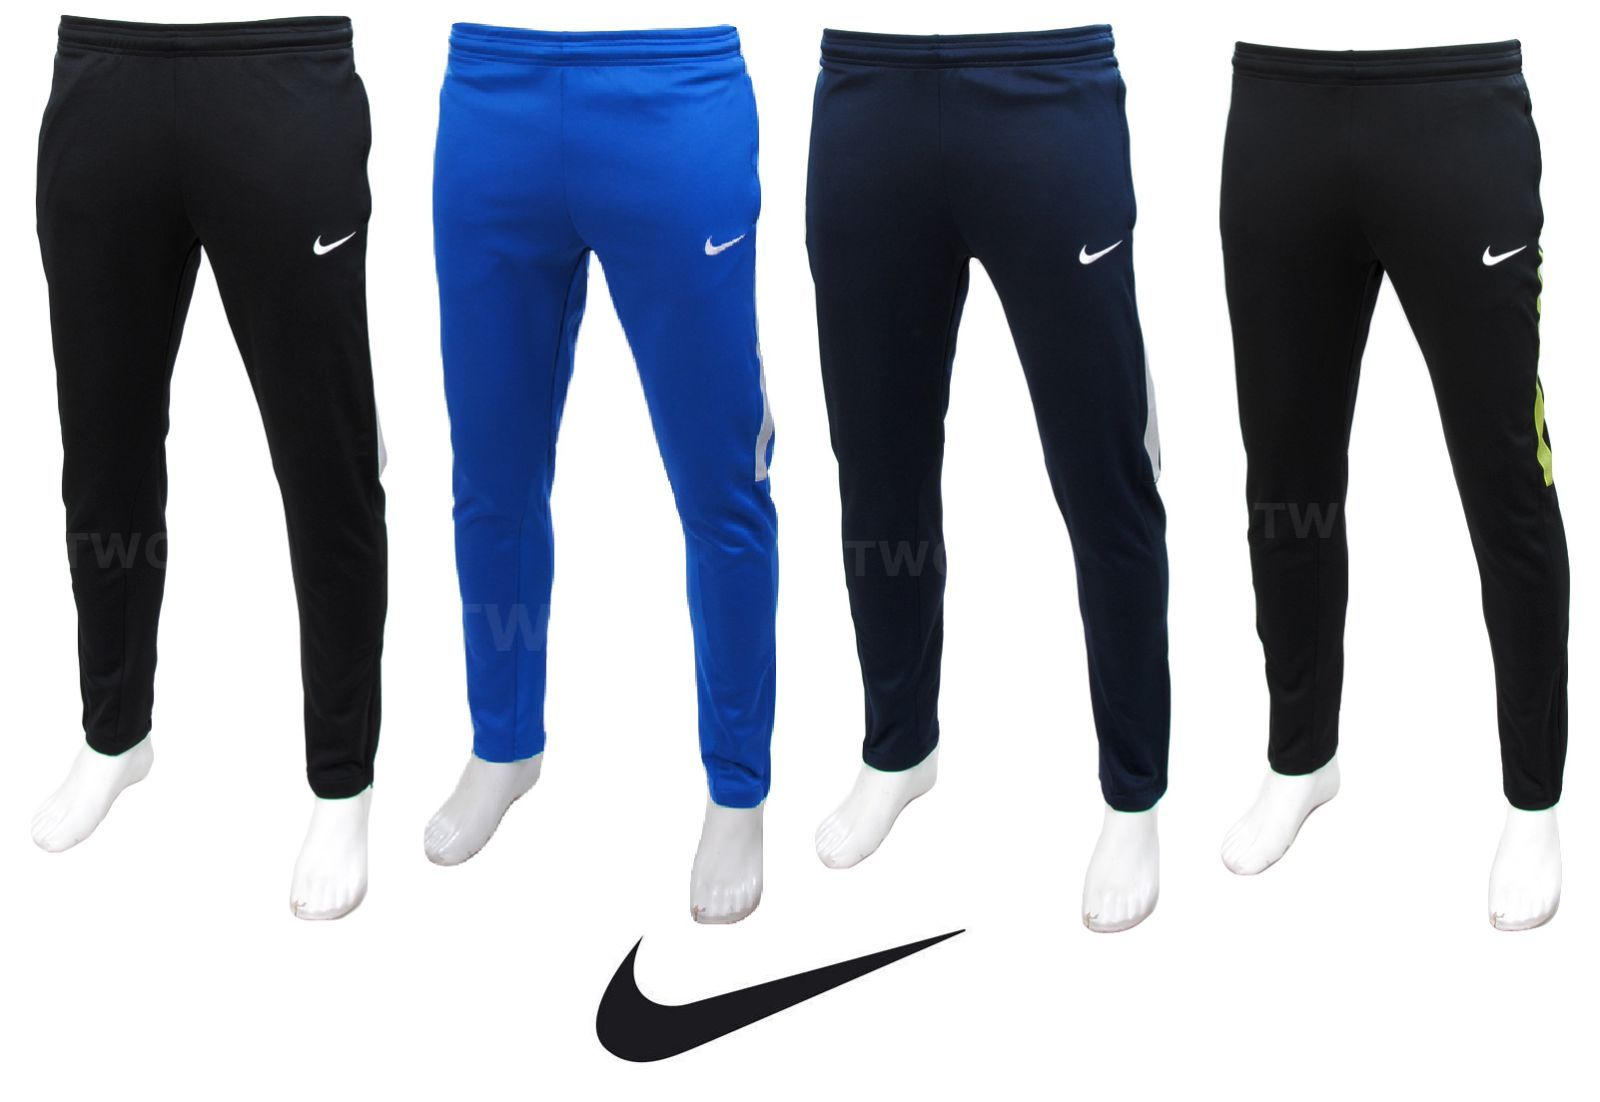 MENS NIKE SLIM TAPERED TRAINING TRACKSUIT BOTTOMS PANTS FOOTBALL RUNNING JOGGING